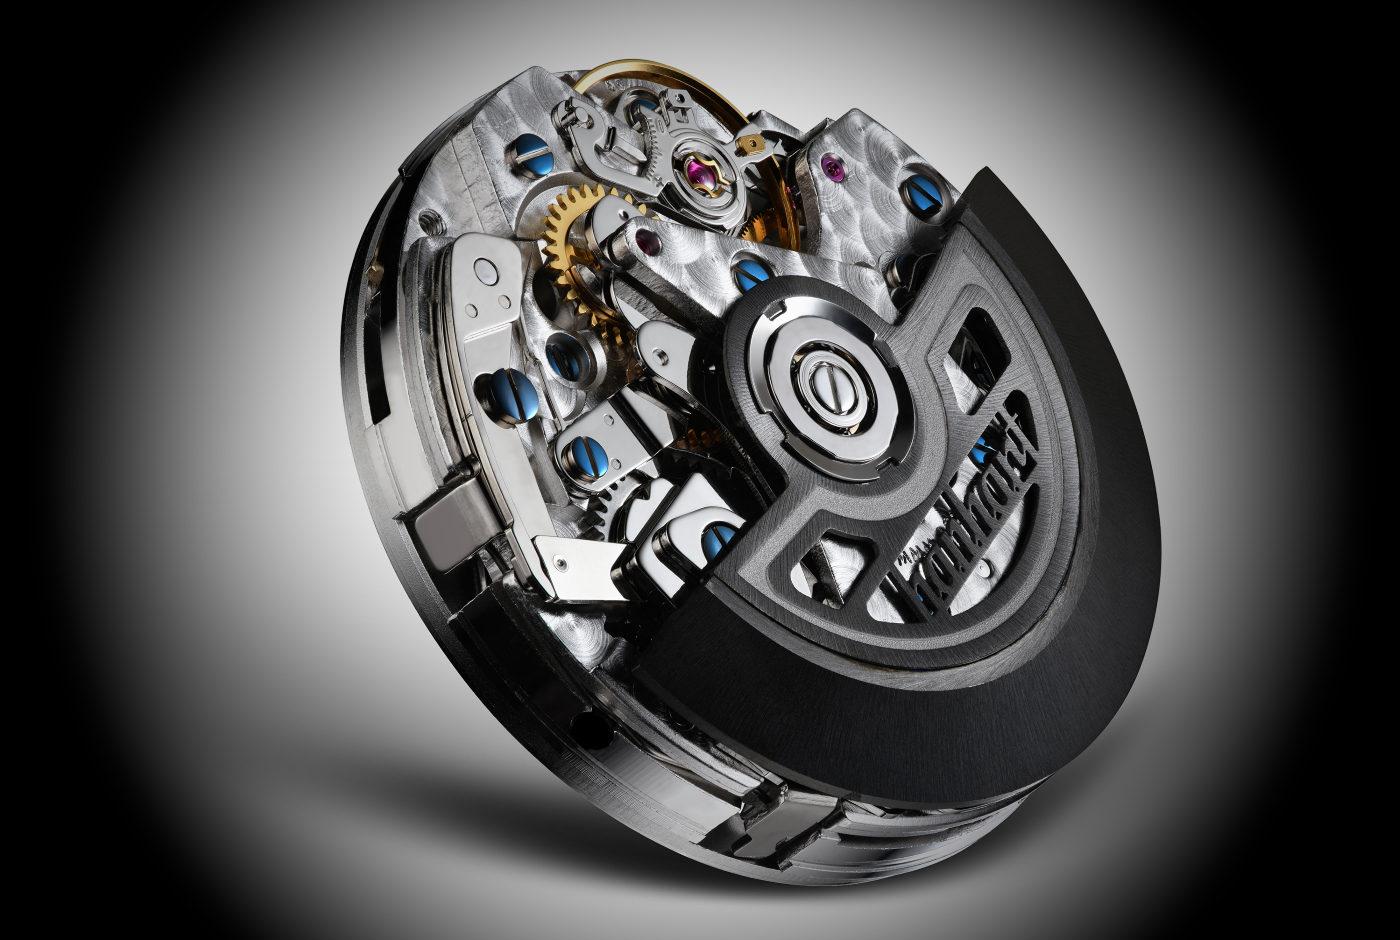 Hanhart-pioneer-mkii-80-years-limited-edition_calibre-Europa_Star_watch_magazine_2020